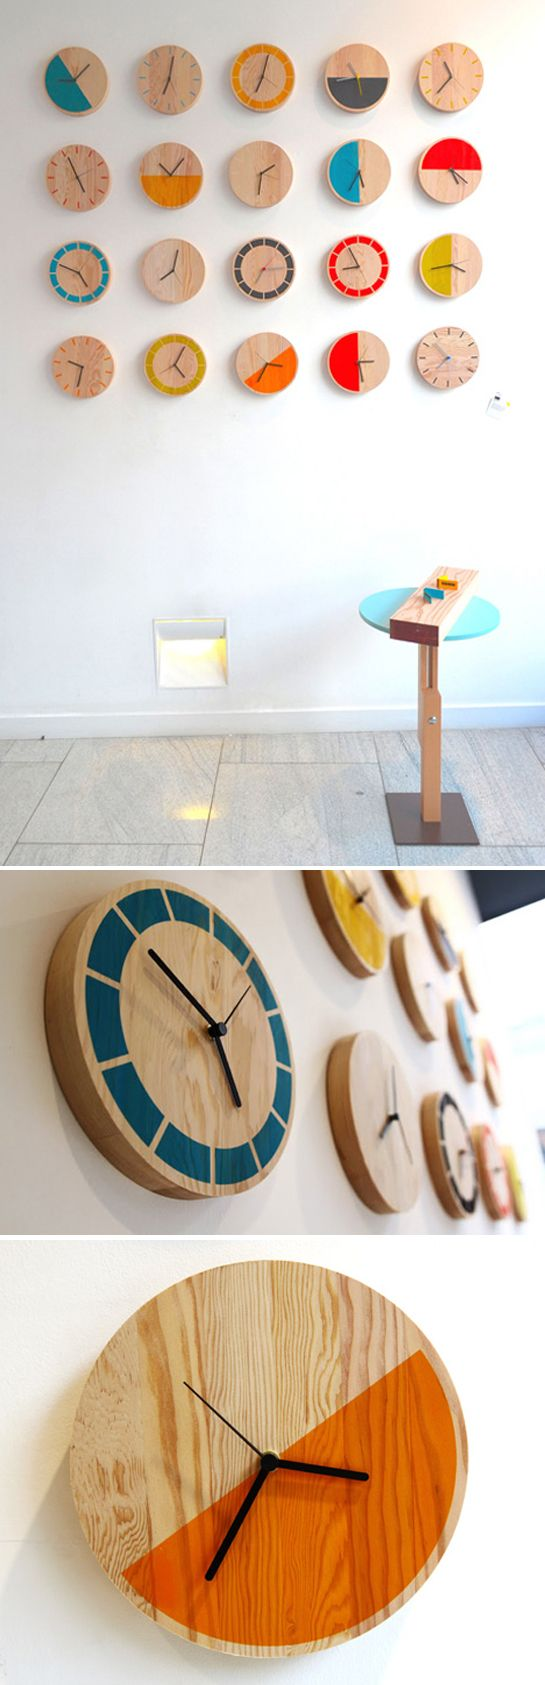 light color wood clock ref